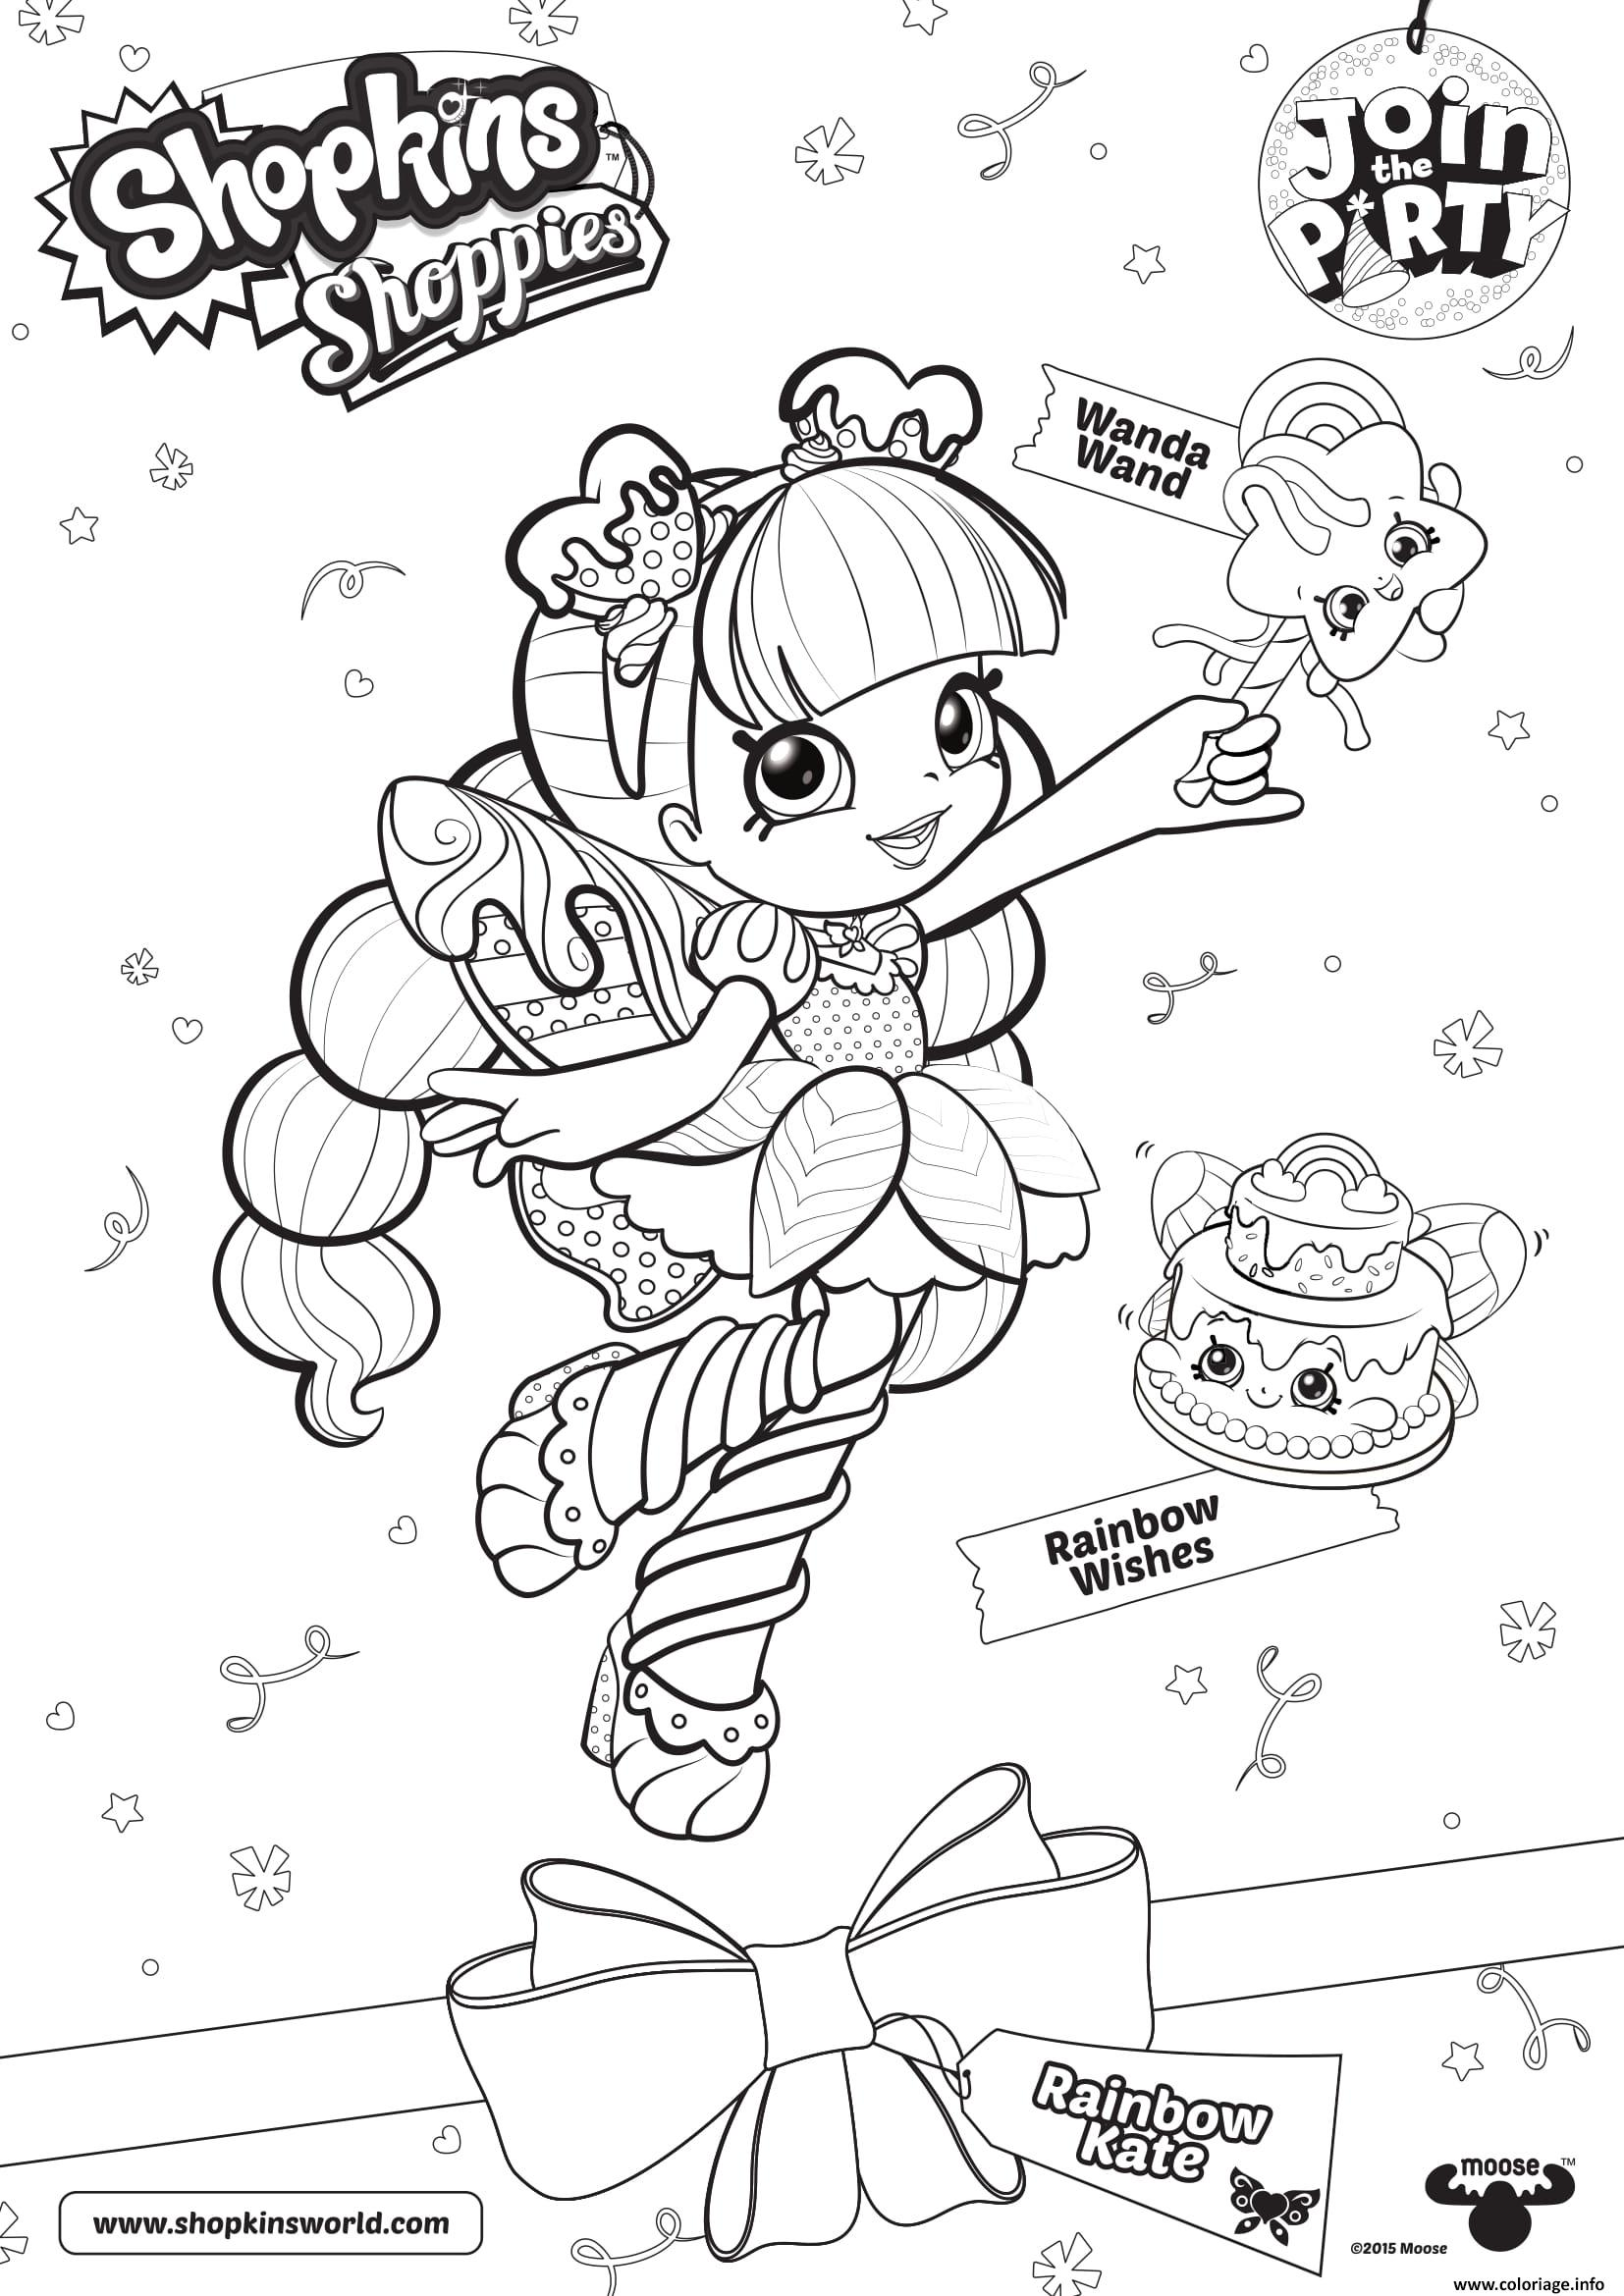 Coloriage Shopkins Doll Rainbow Kate Dessin à Imprimer